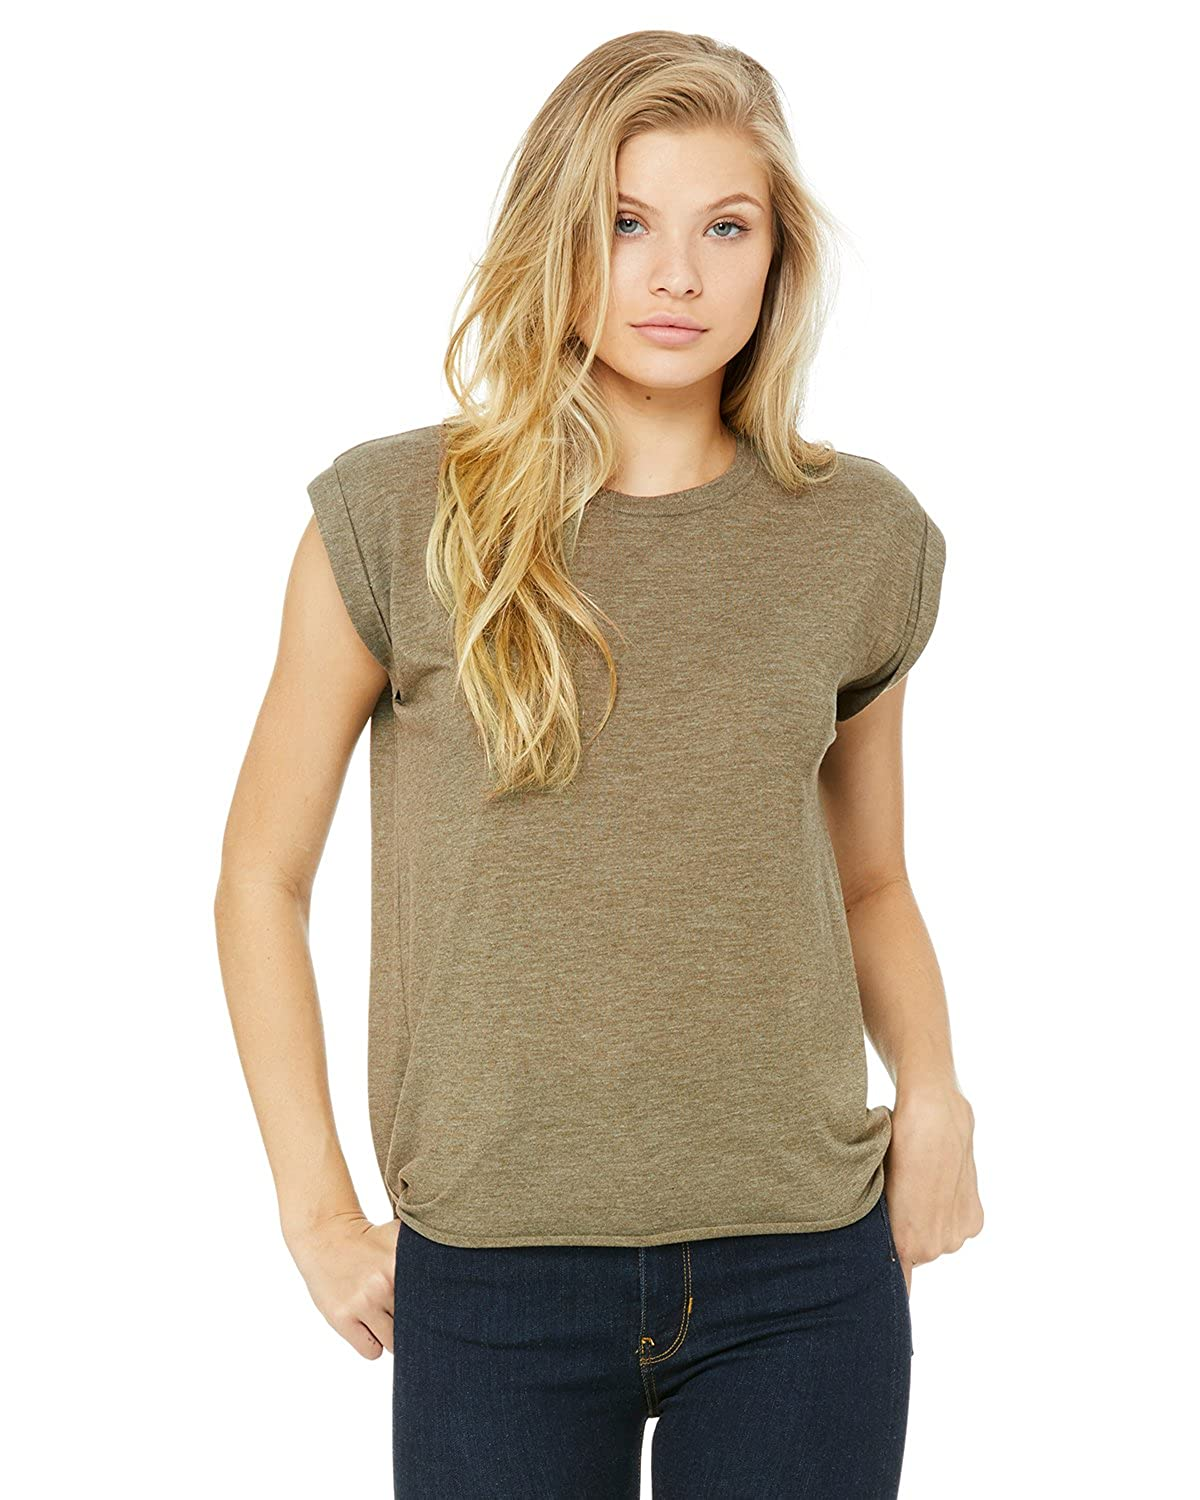 b34c223f8 Bella + Canvas Women's Flowy Muscle Tee with Rolled Cuff at Amazon Women's  Clothing store: